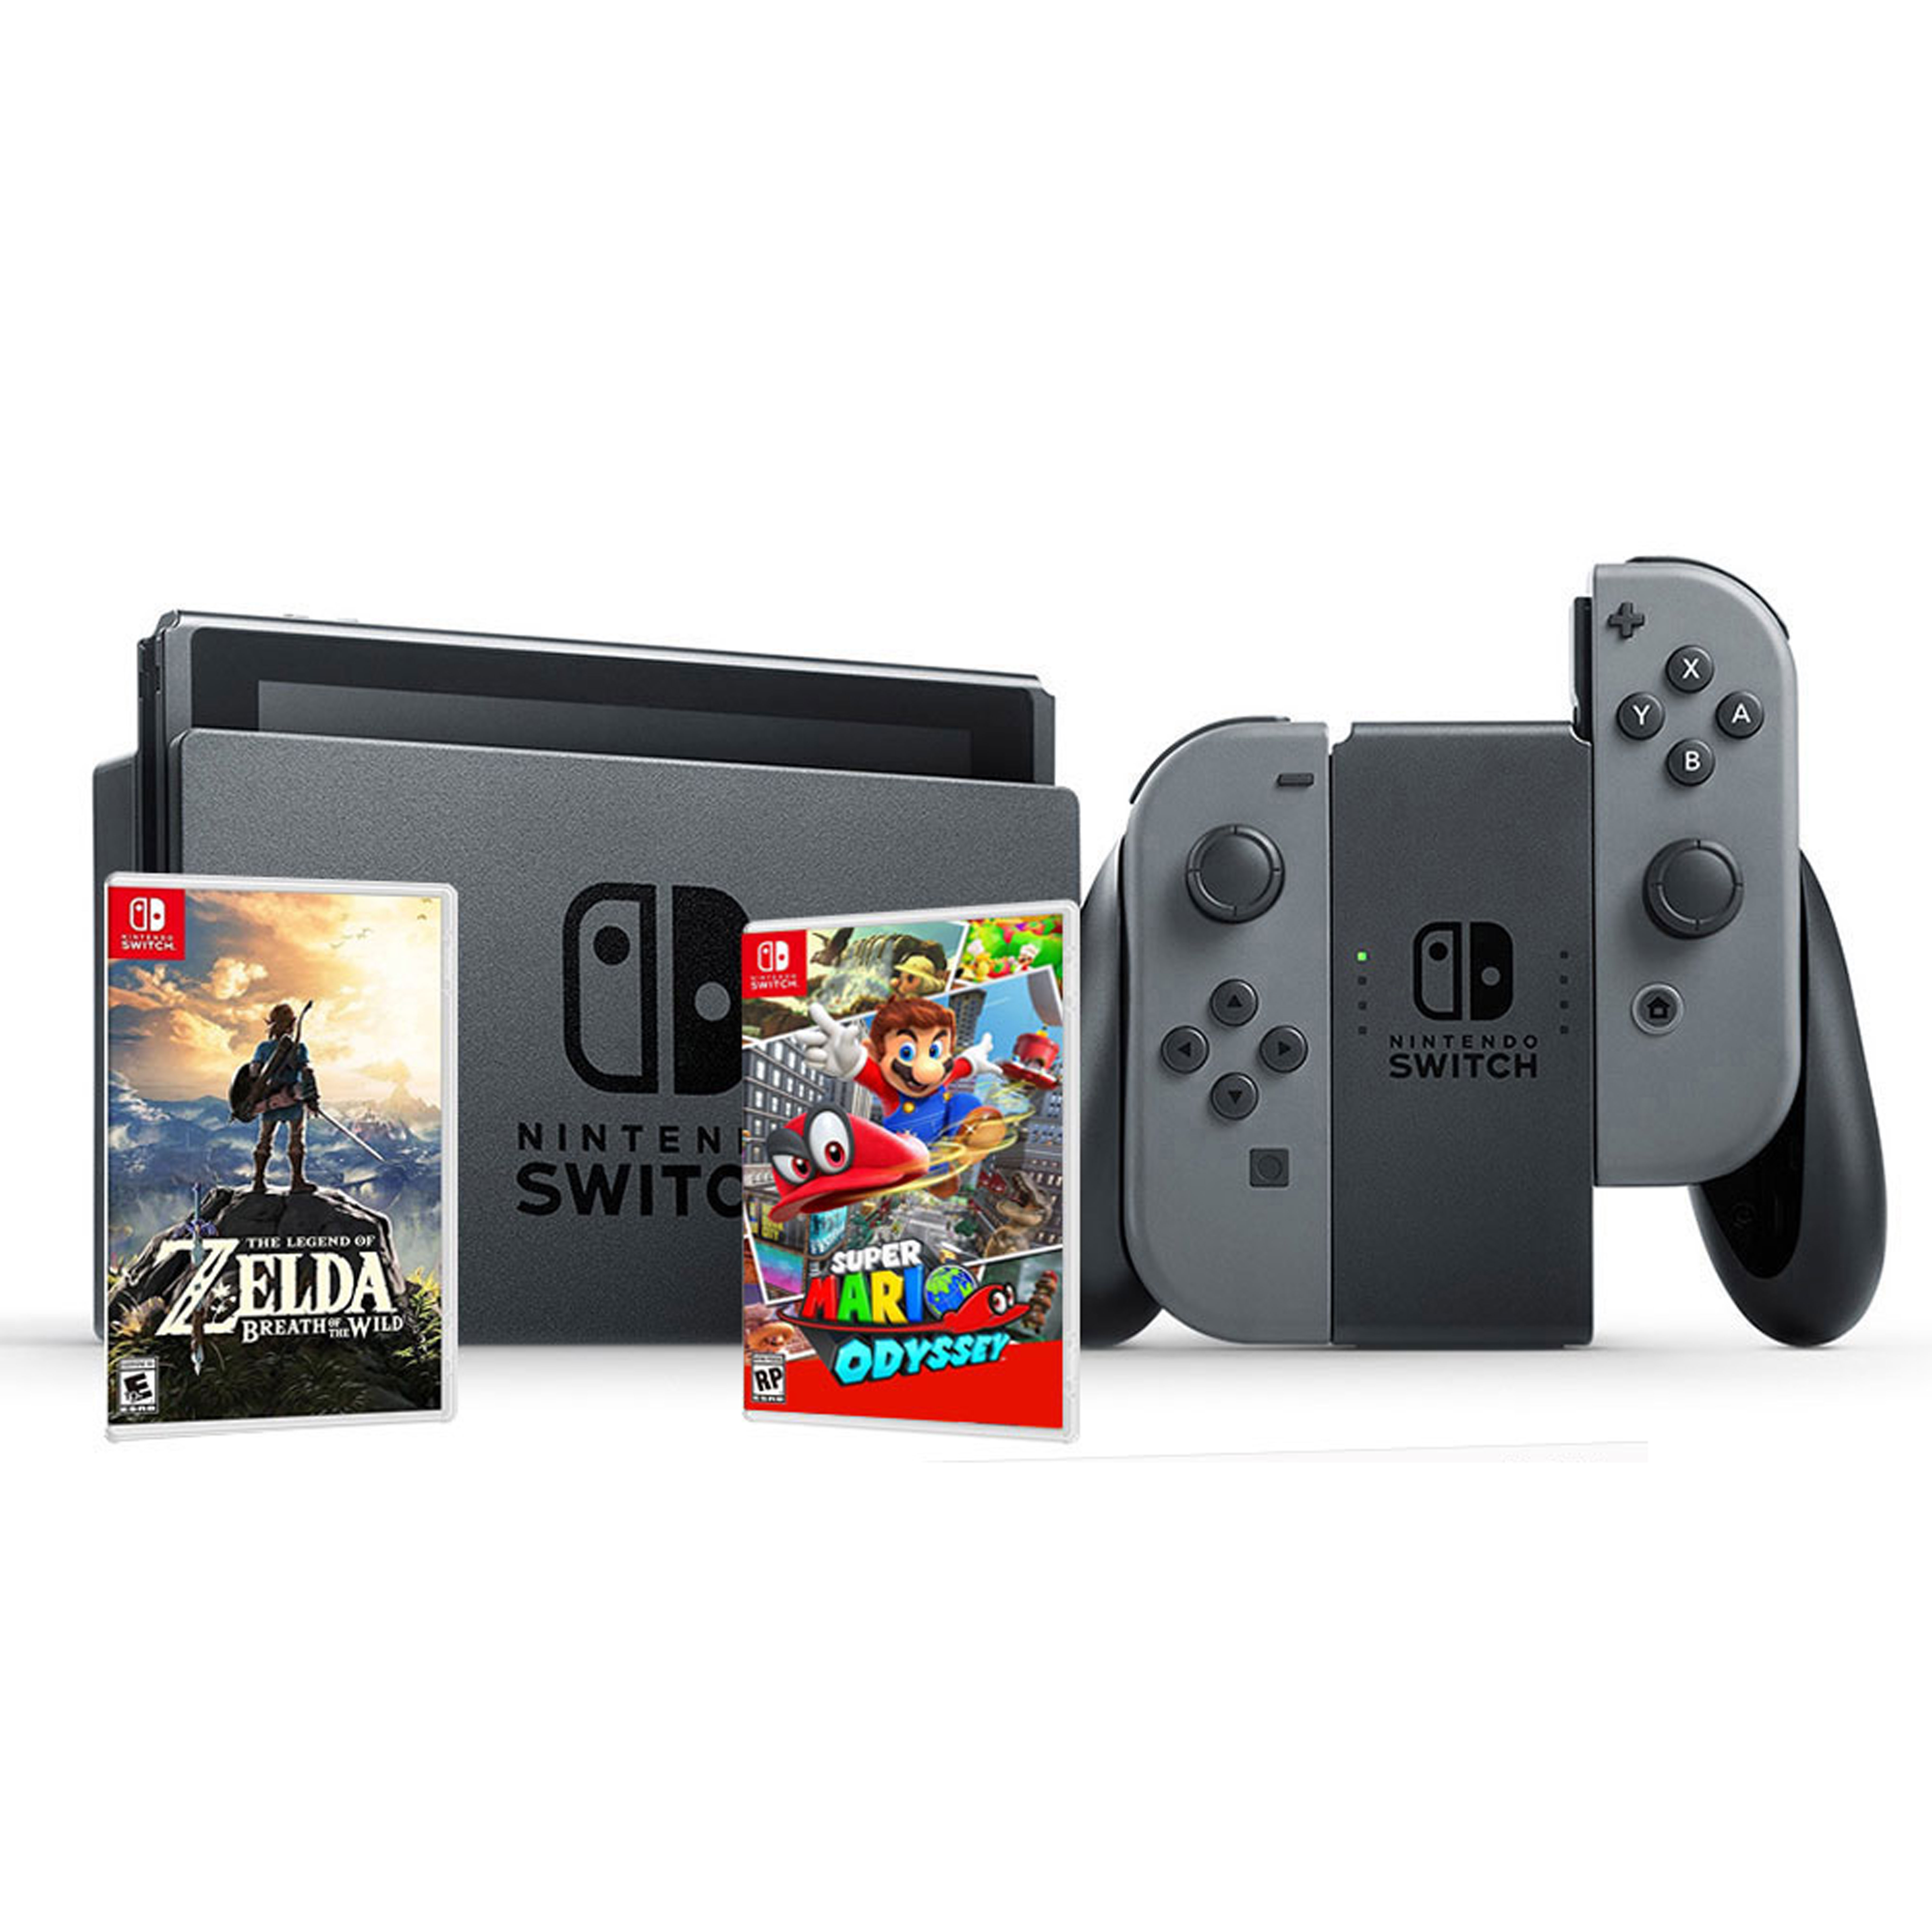 Offre groupée Nintendo Switch (Super Mario/Zelda)